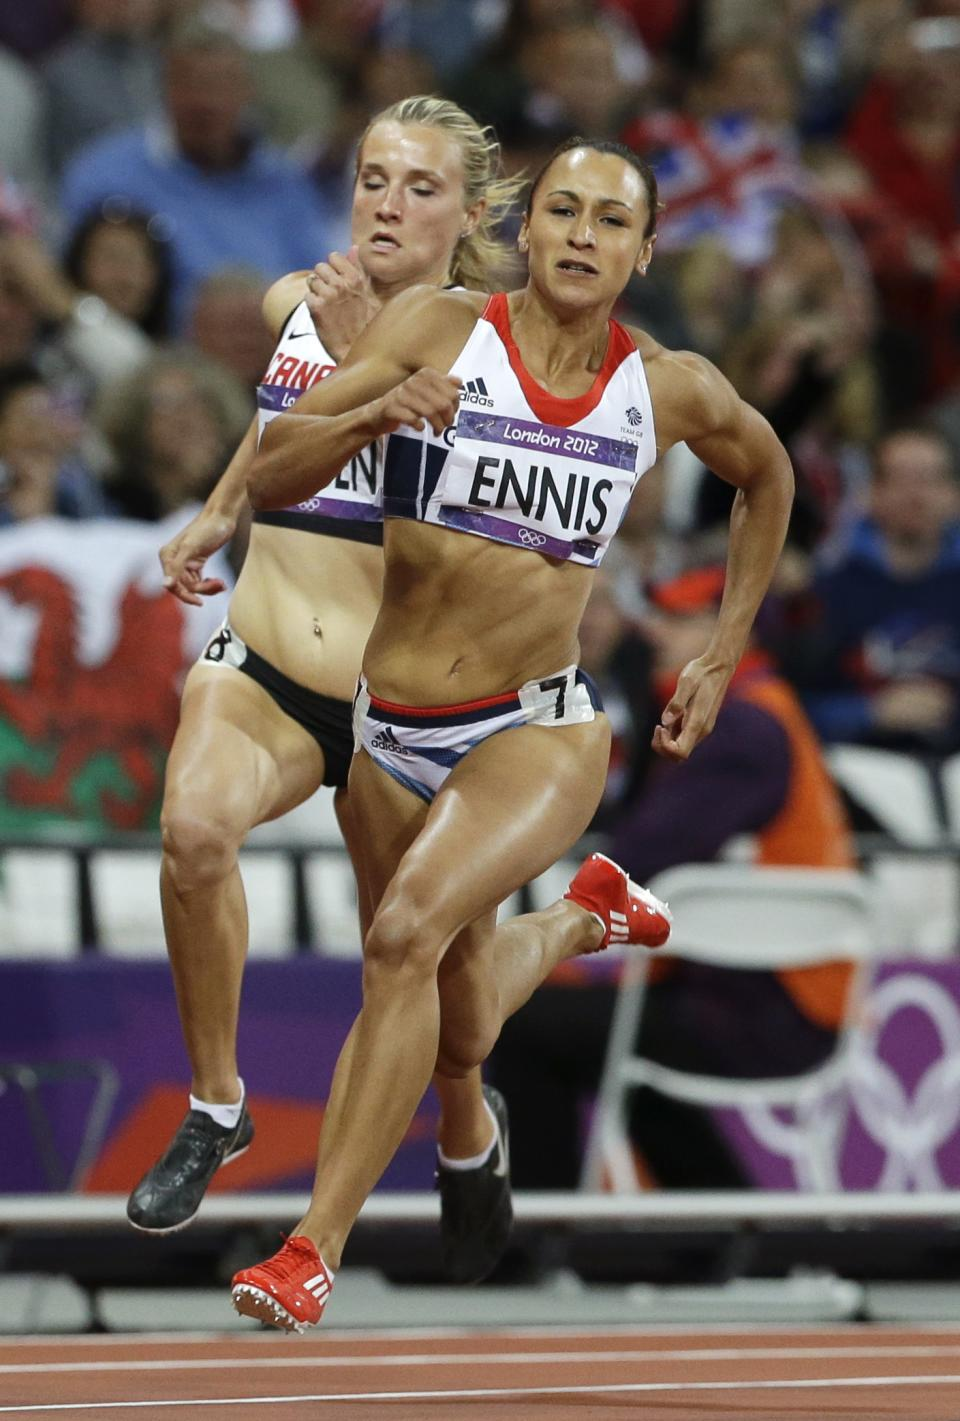 Britain's Jessica Ennis, right, and Canada's Brianne Theisen compete in a 200-meter heptathlon during the athletics in the Olympic Stadium at the 2012 Summer Olympics, London, Friday, Aug. 3, 2012. (AP Photo/Ben Curtis)